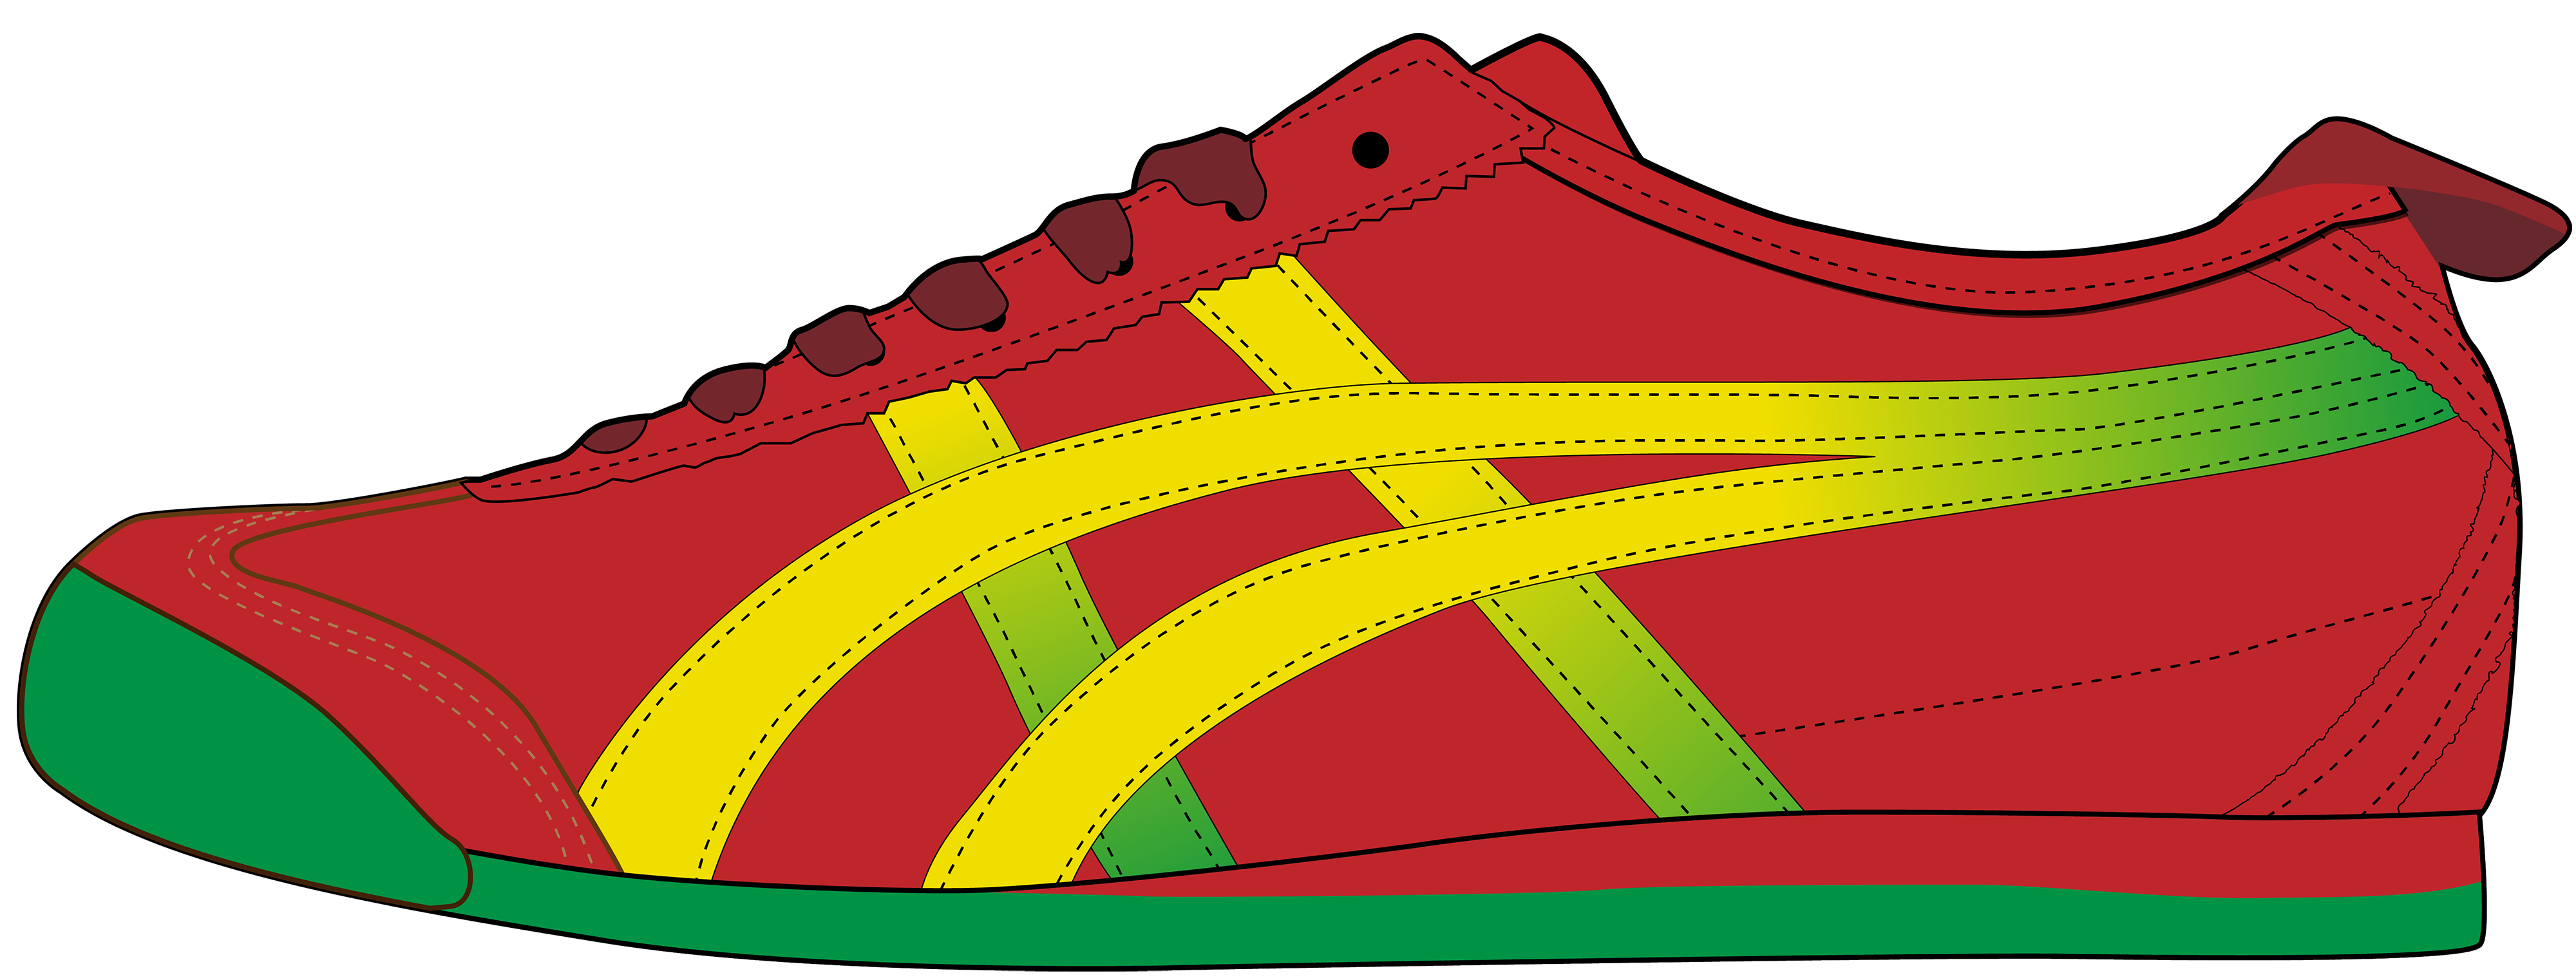 banner library download Red men sport shoe. Shoes clipart